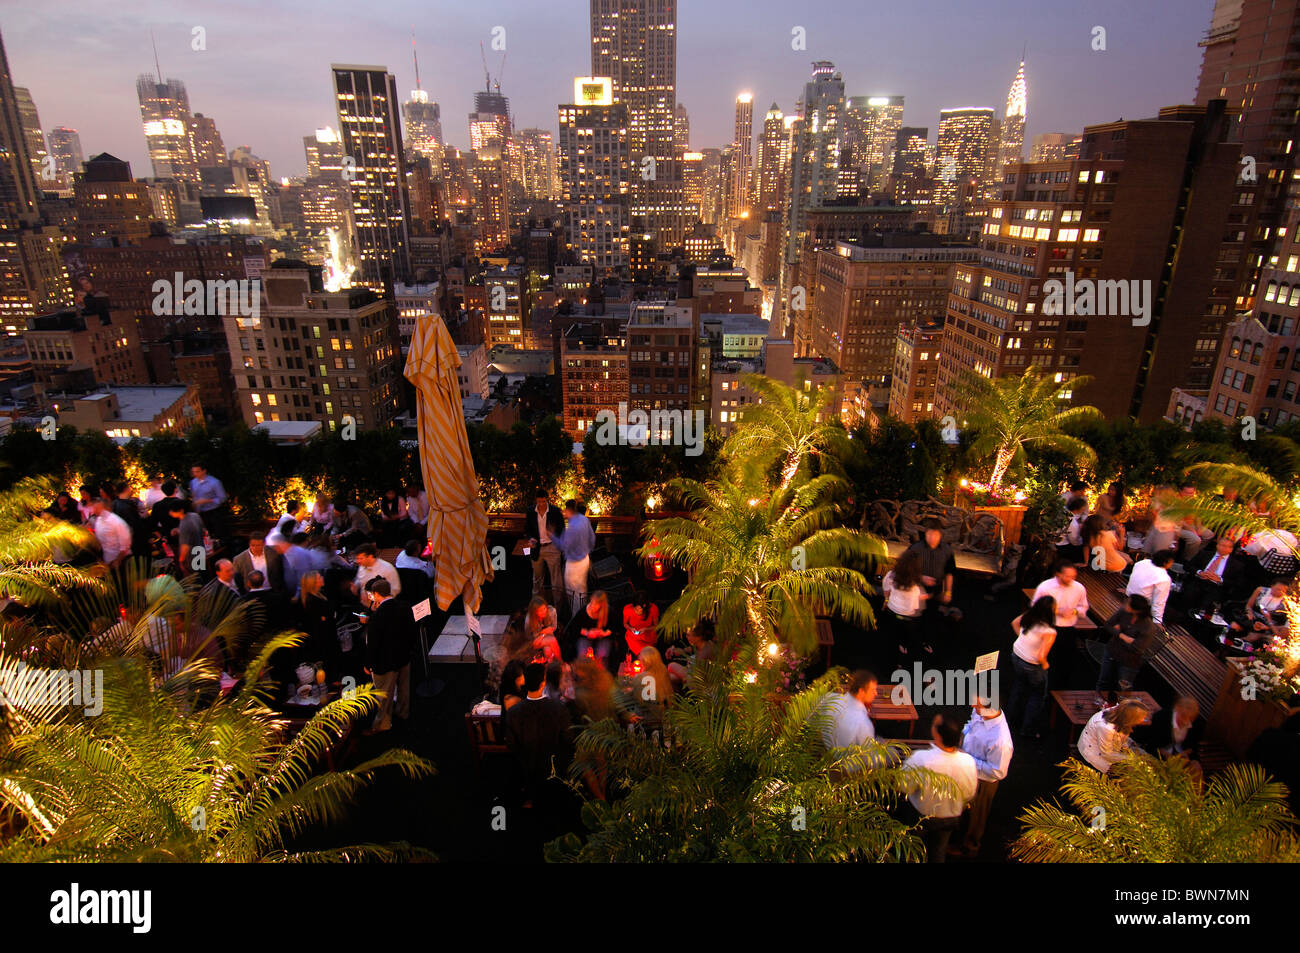 New York Roof Bar Stock Photos & New York Roof Bar Stock Images - Alamy